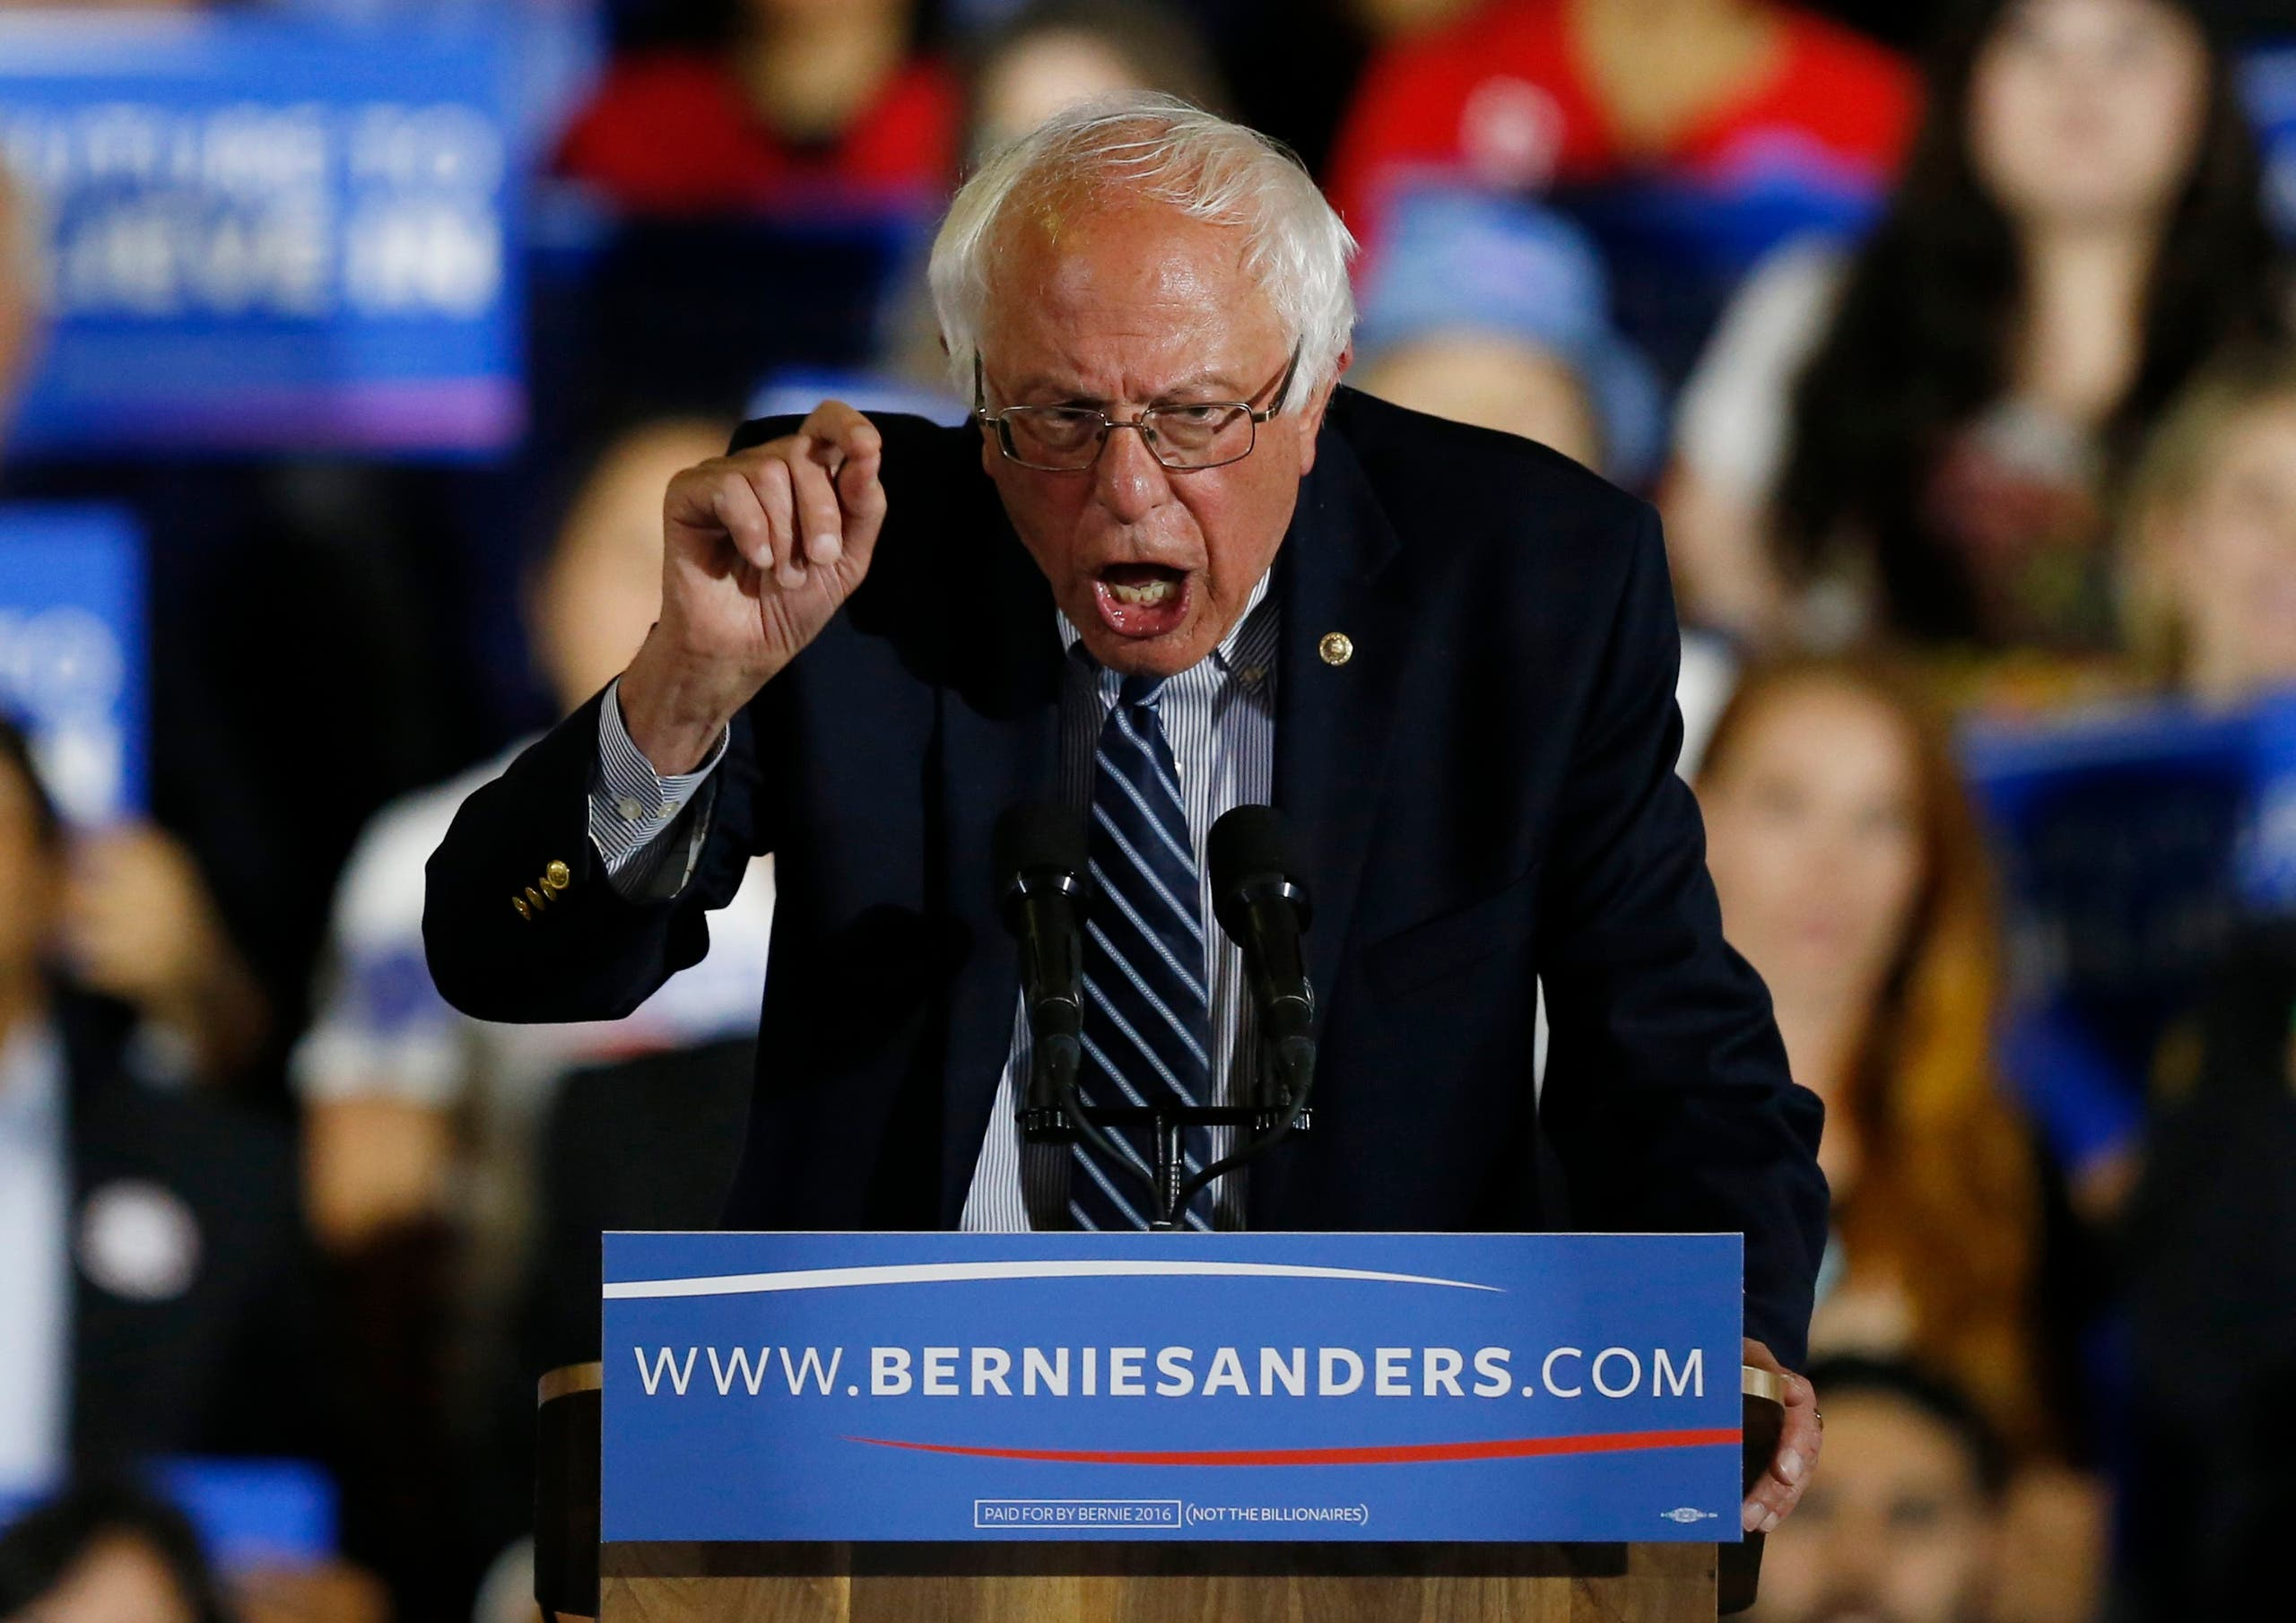 Bernie Sanders says he will 'continue the fight' in the last primary of the Democratic campaign next week in Washington, D.C. (Reuters)